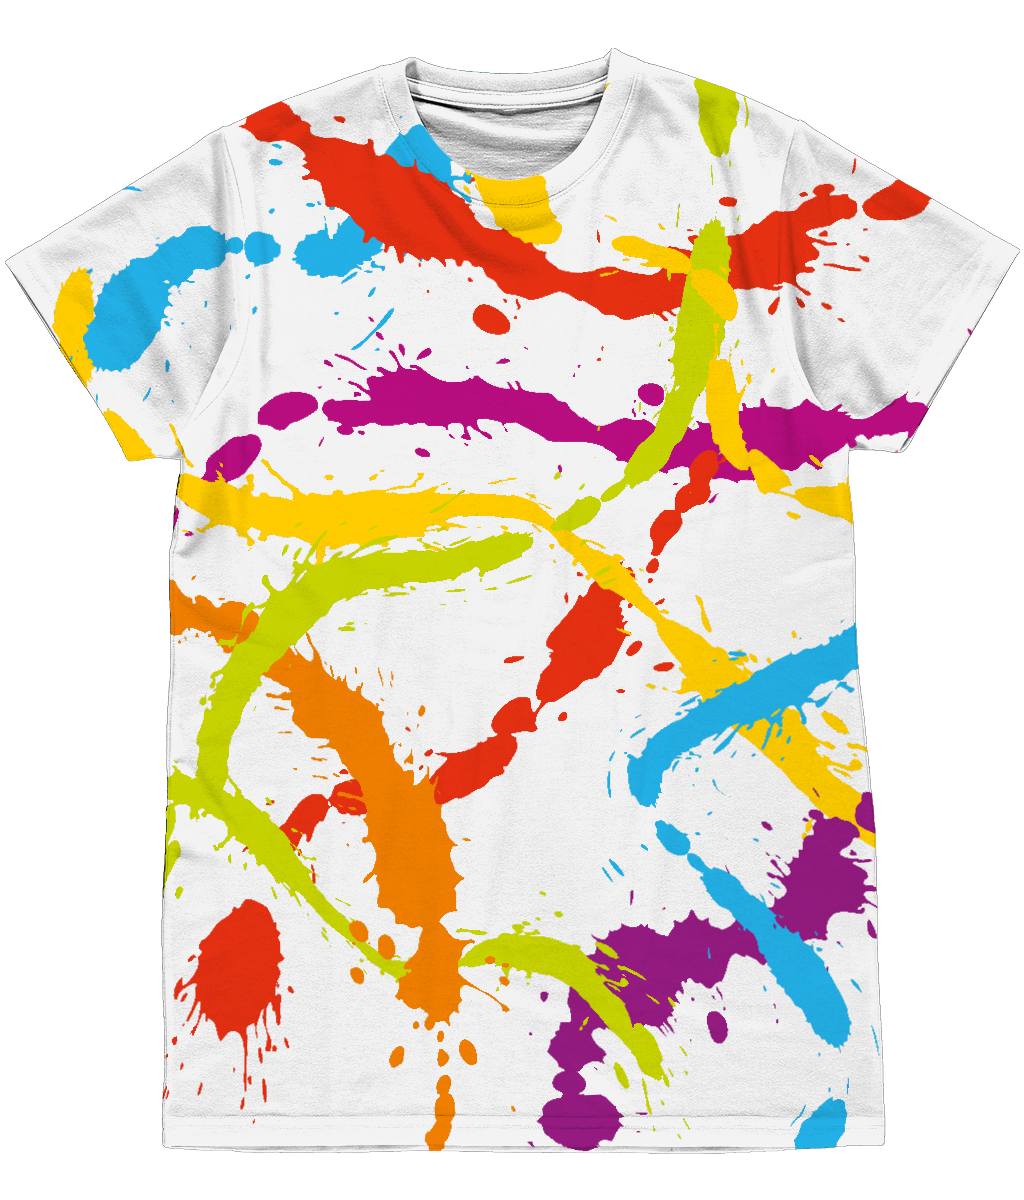 Splattered Rainbow [WHITE] Unisex All-Over Sublimation Tee [FRONT] by Daniel Bevis